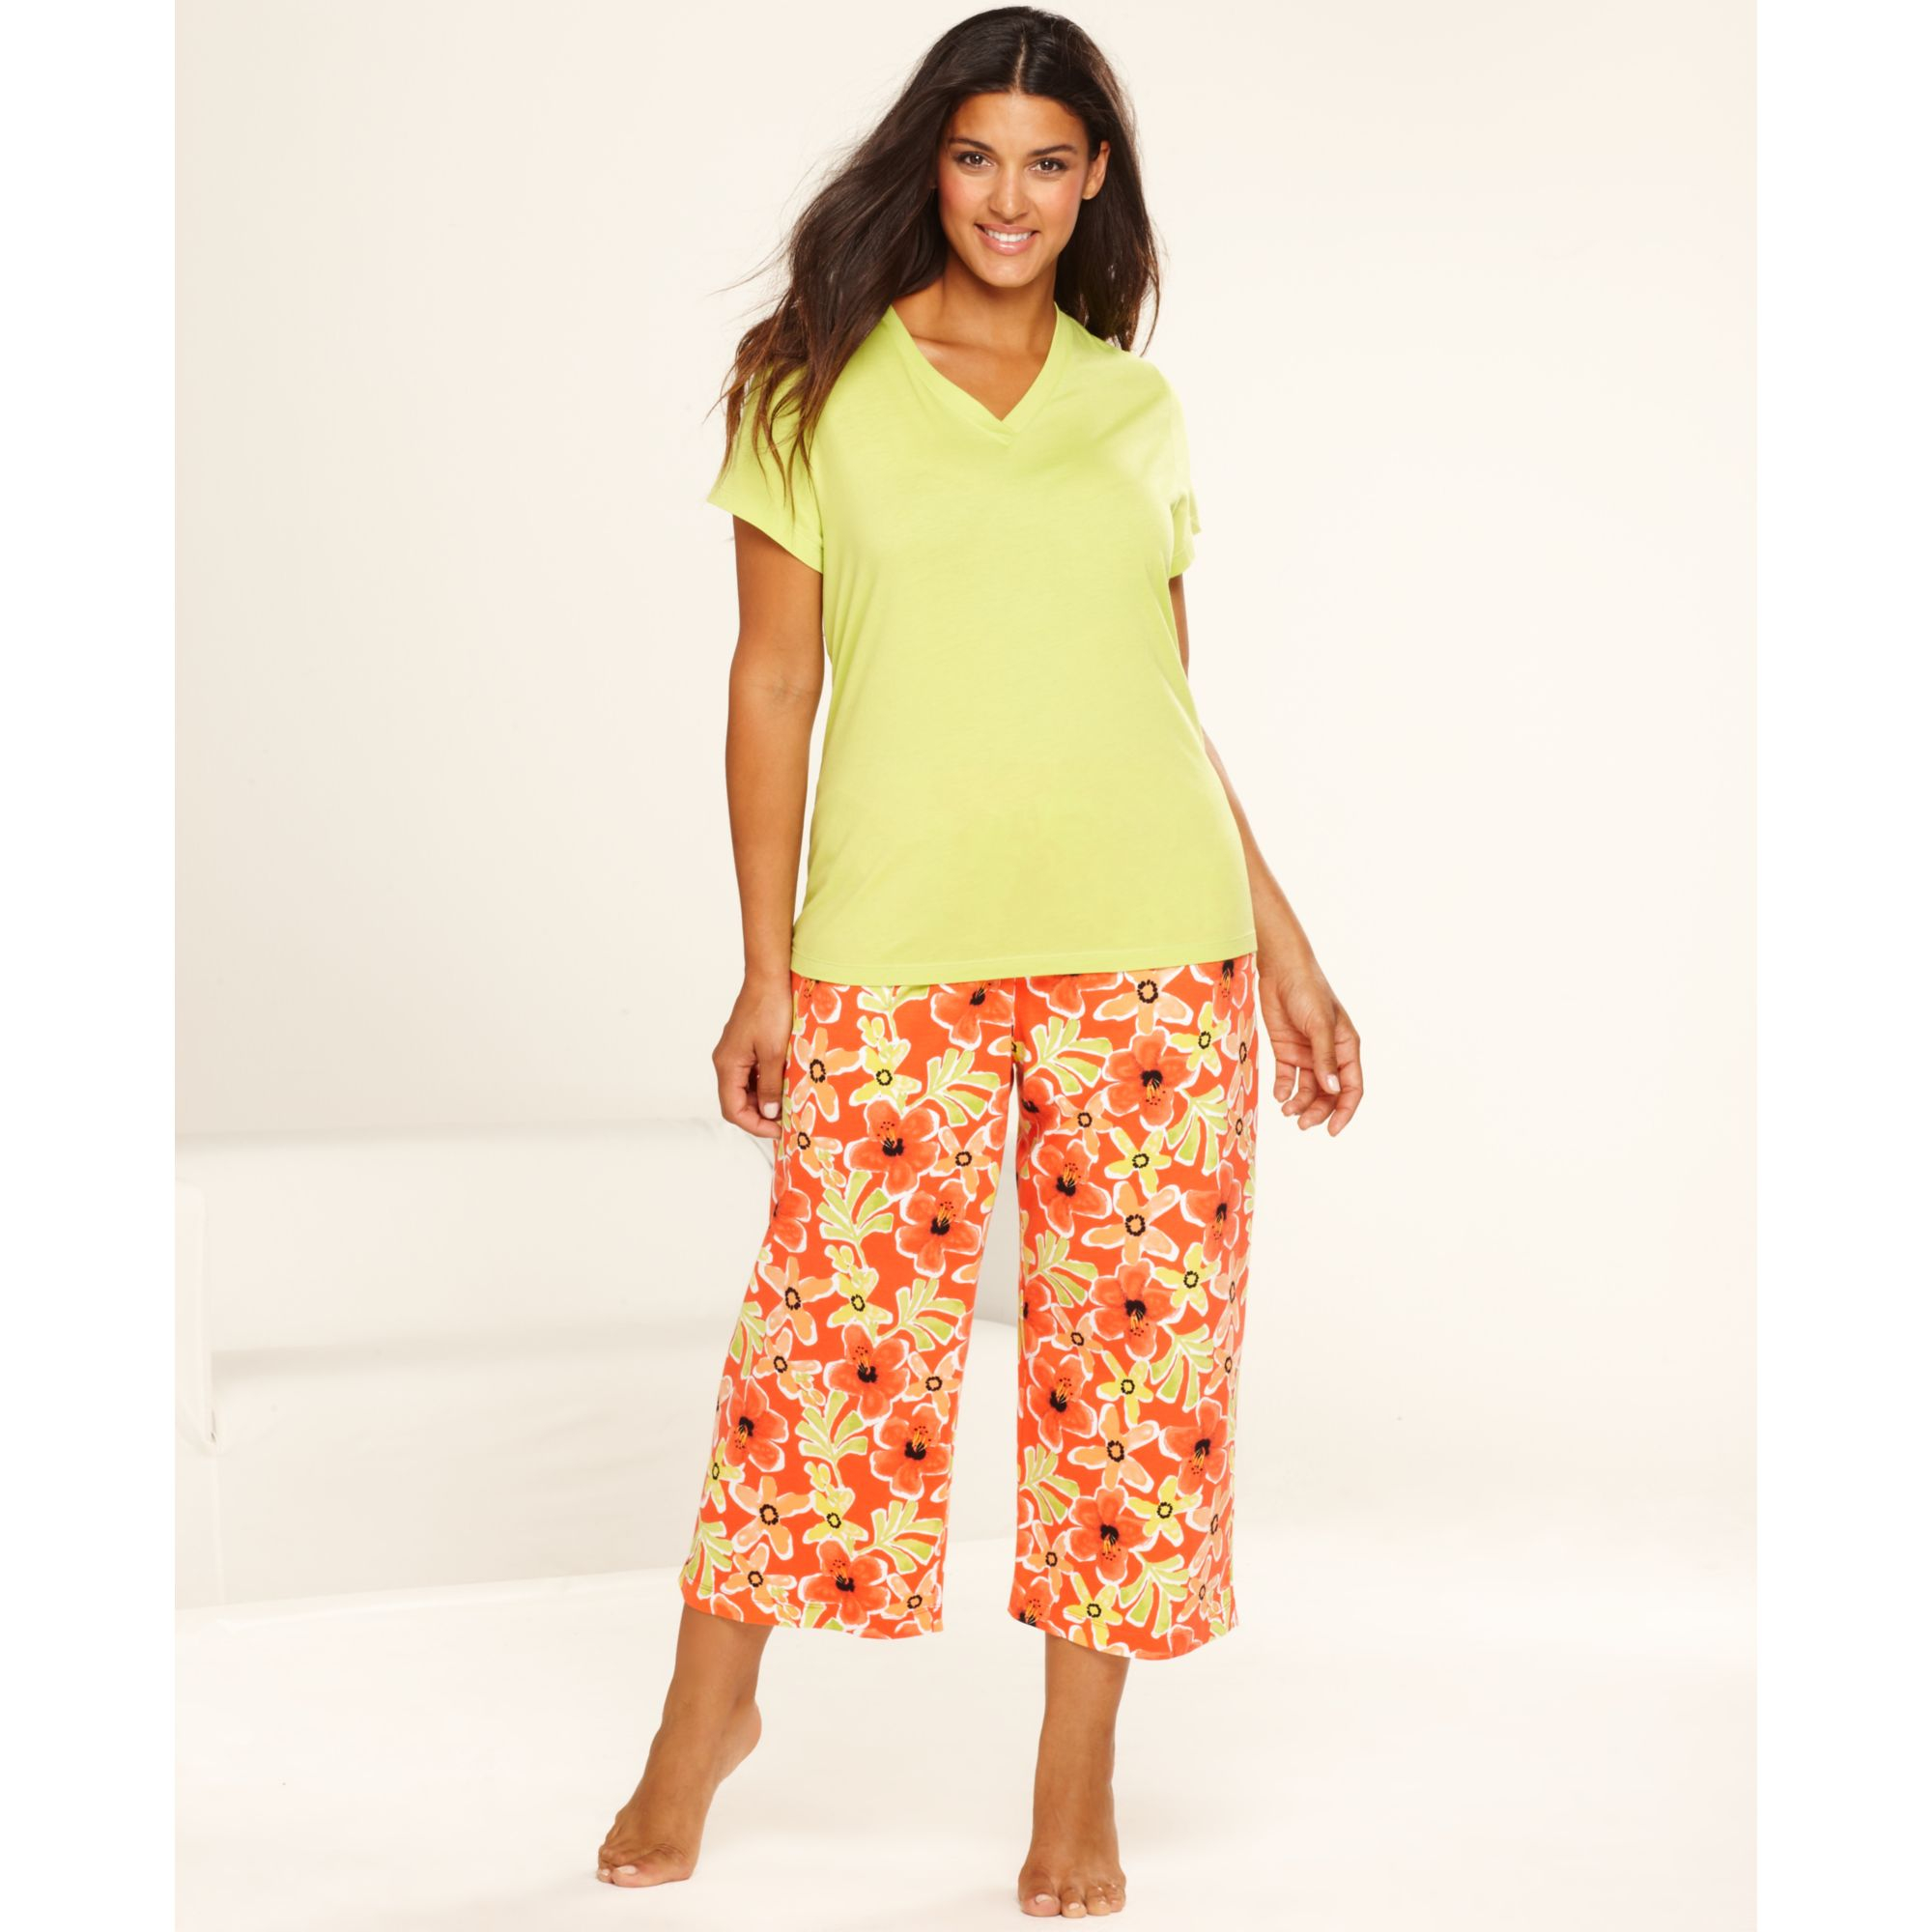 Free shipping BOTH ways on pajama shorts womens plus size, from our vast selection of styles. Fast delivery, and 24/7/ real-person service with a smile. Click or call